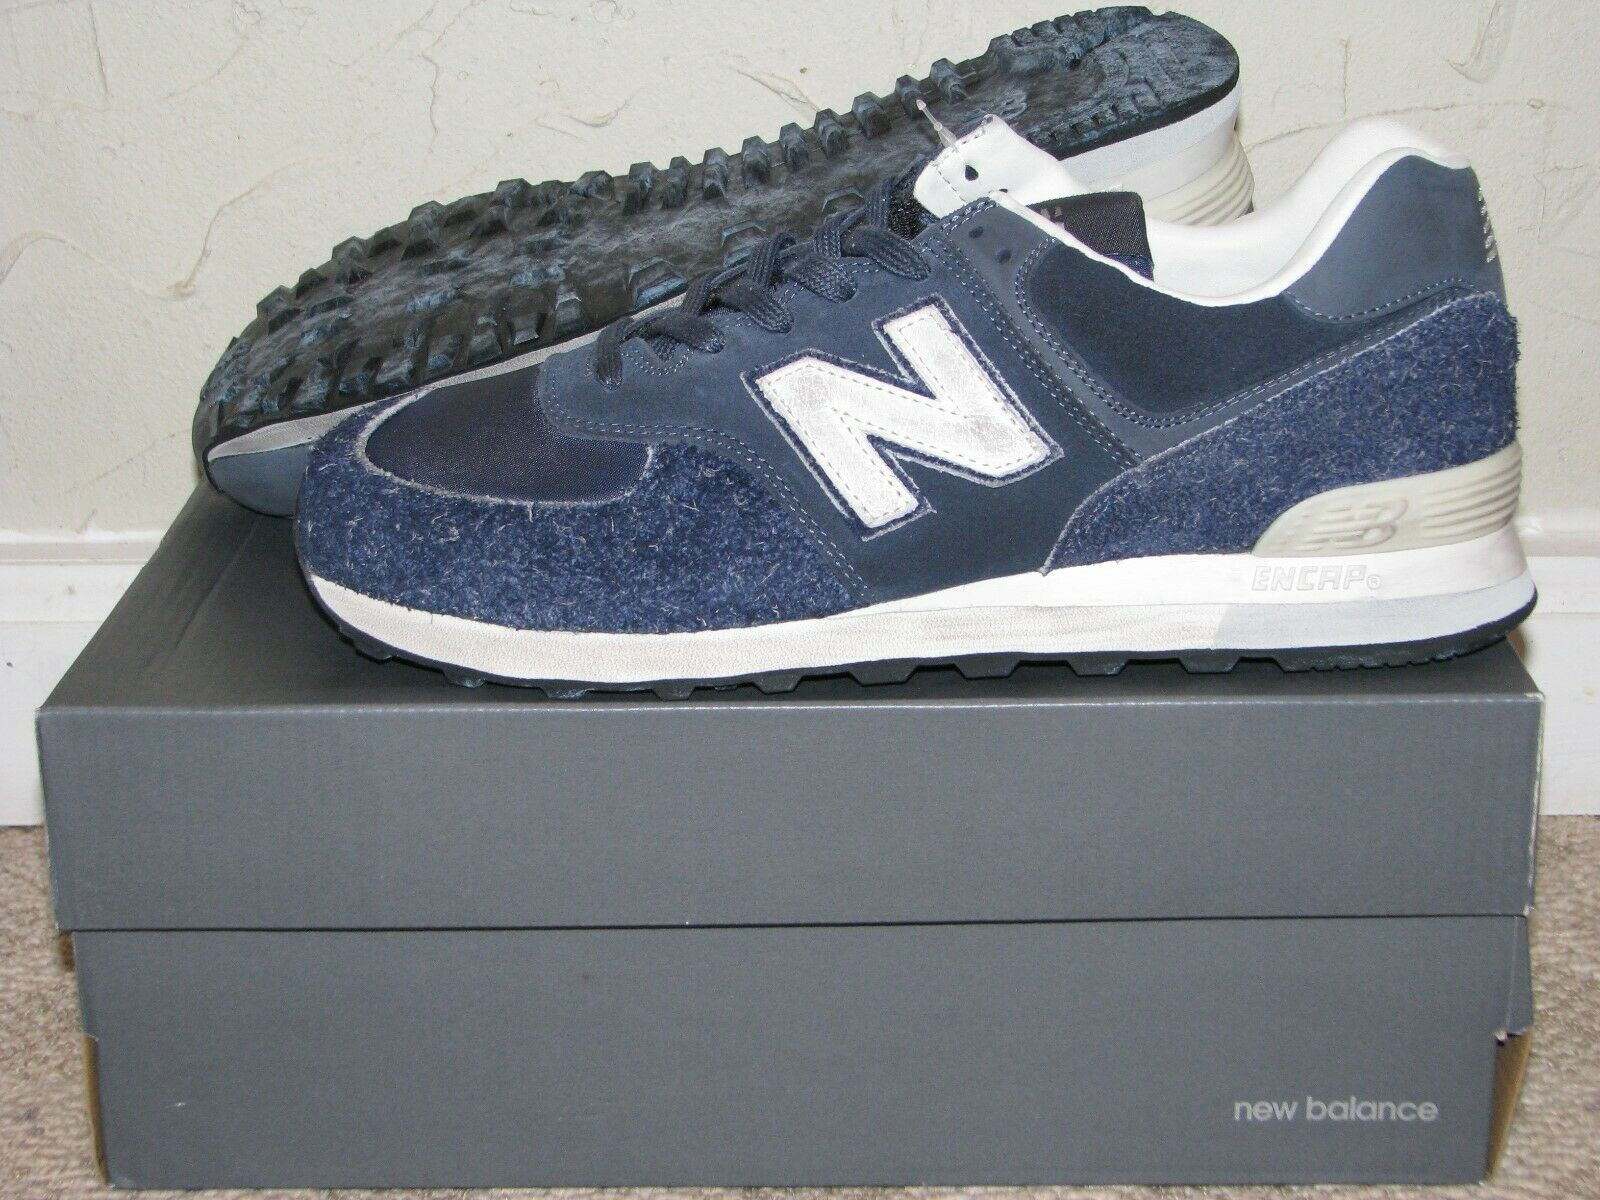 Invincible x New Balance ML574INV Navy bluee Sail Mens Size 10.5 DS NEW  576 580